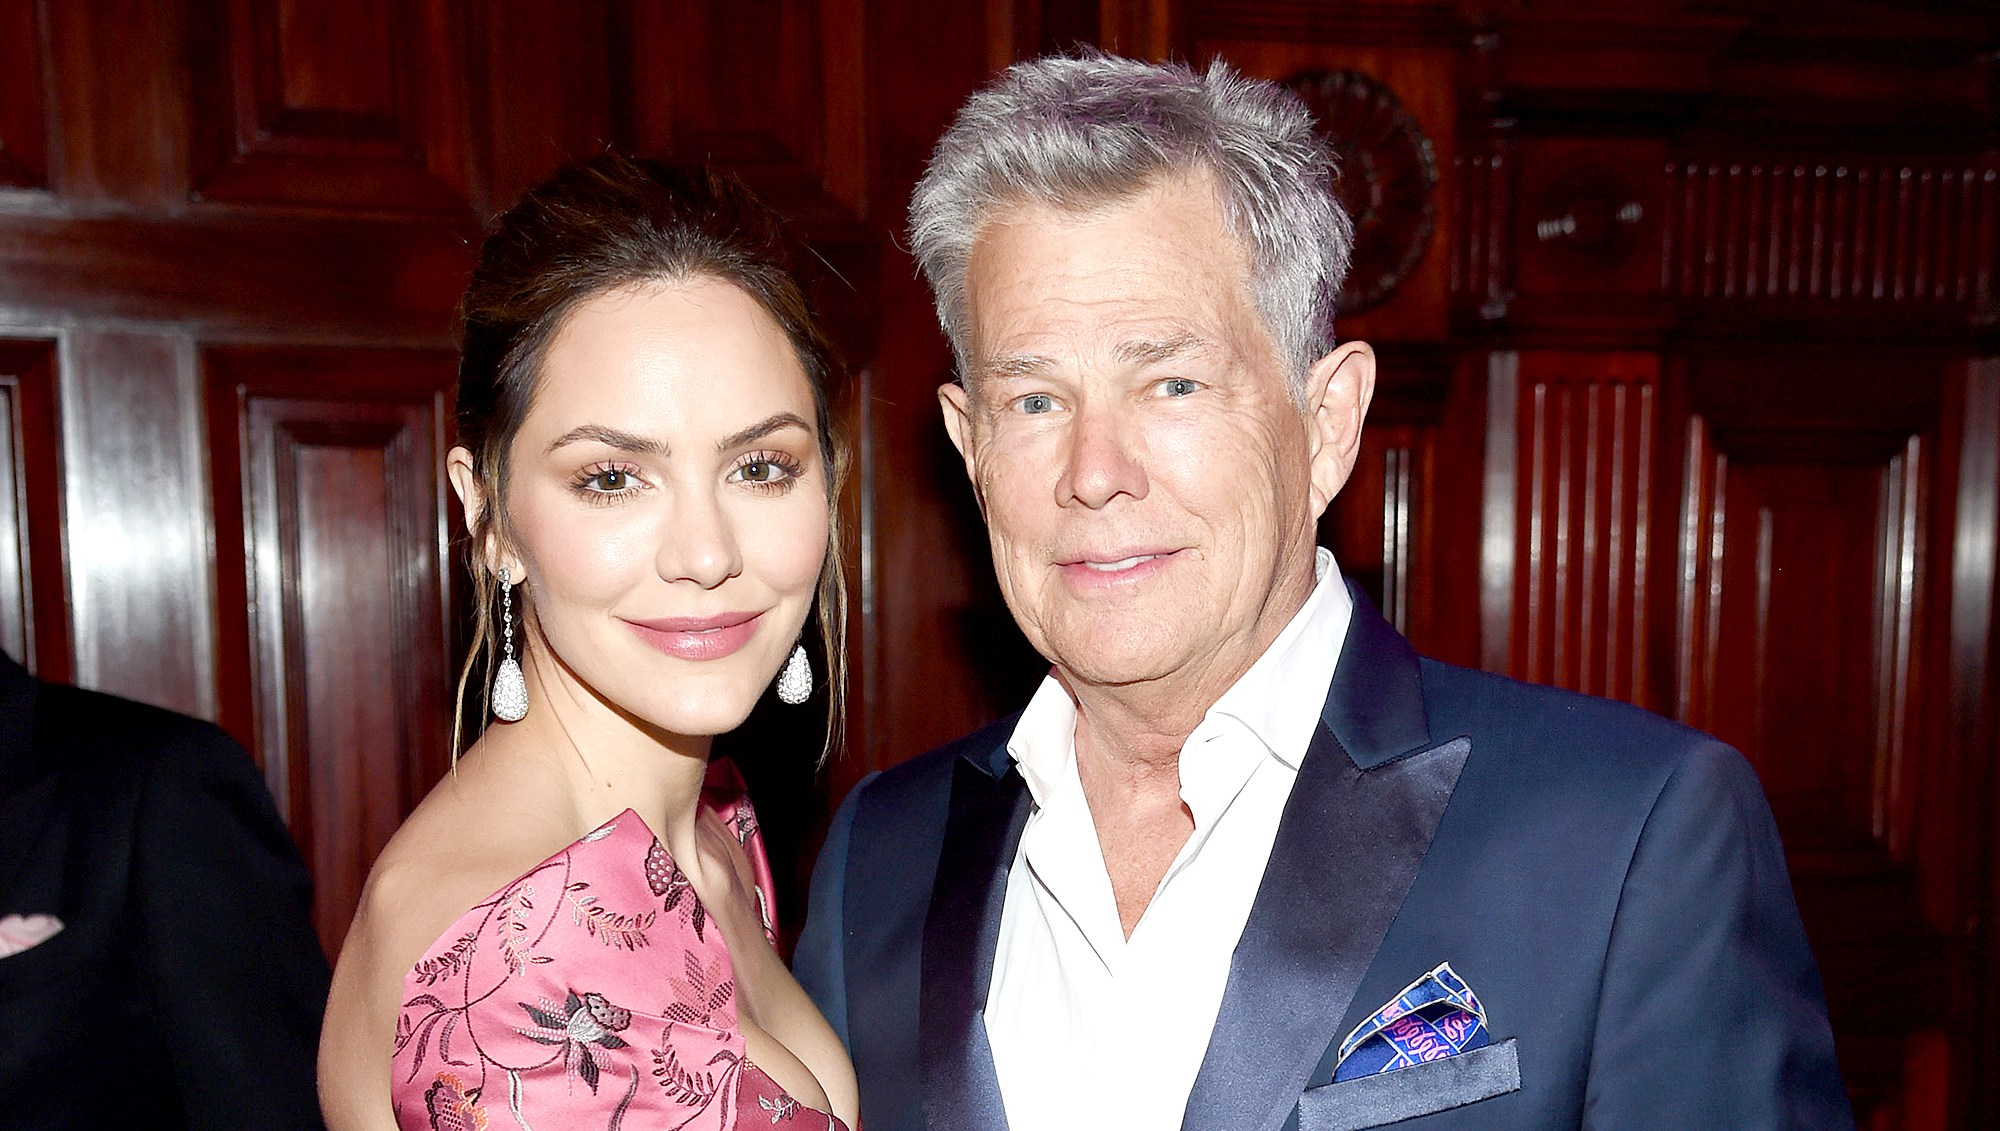 Katharine McPhee and David Foster Get Marriage License: They 'Cannot Wait' to Tie the Knot